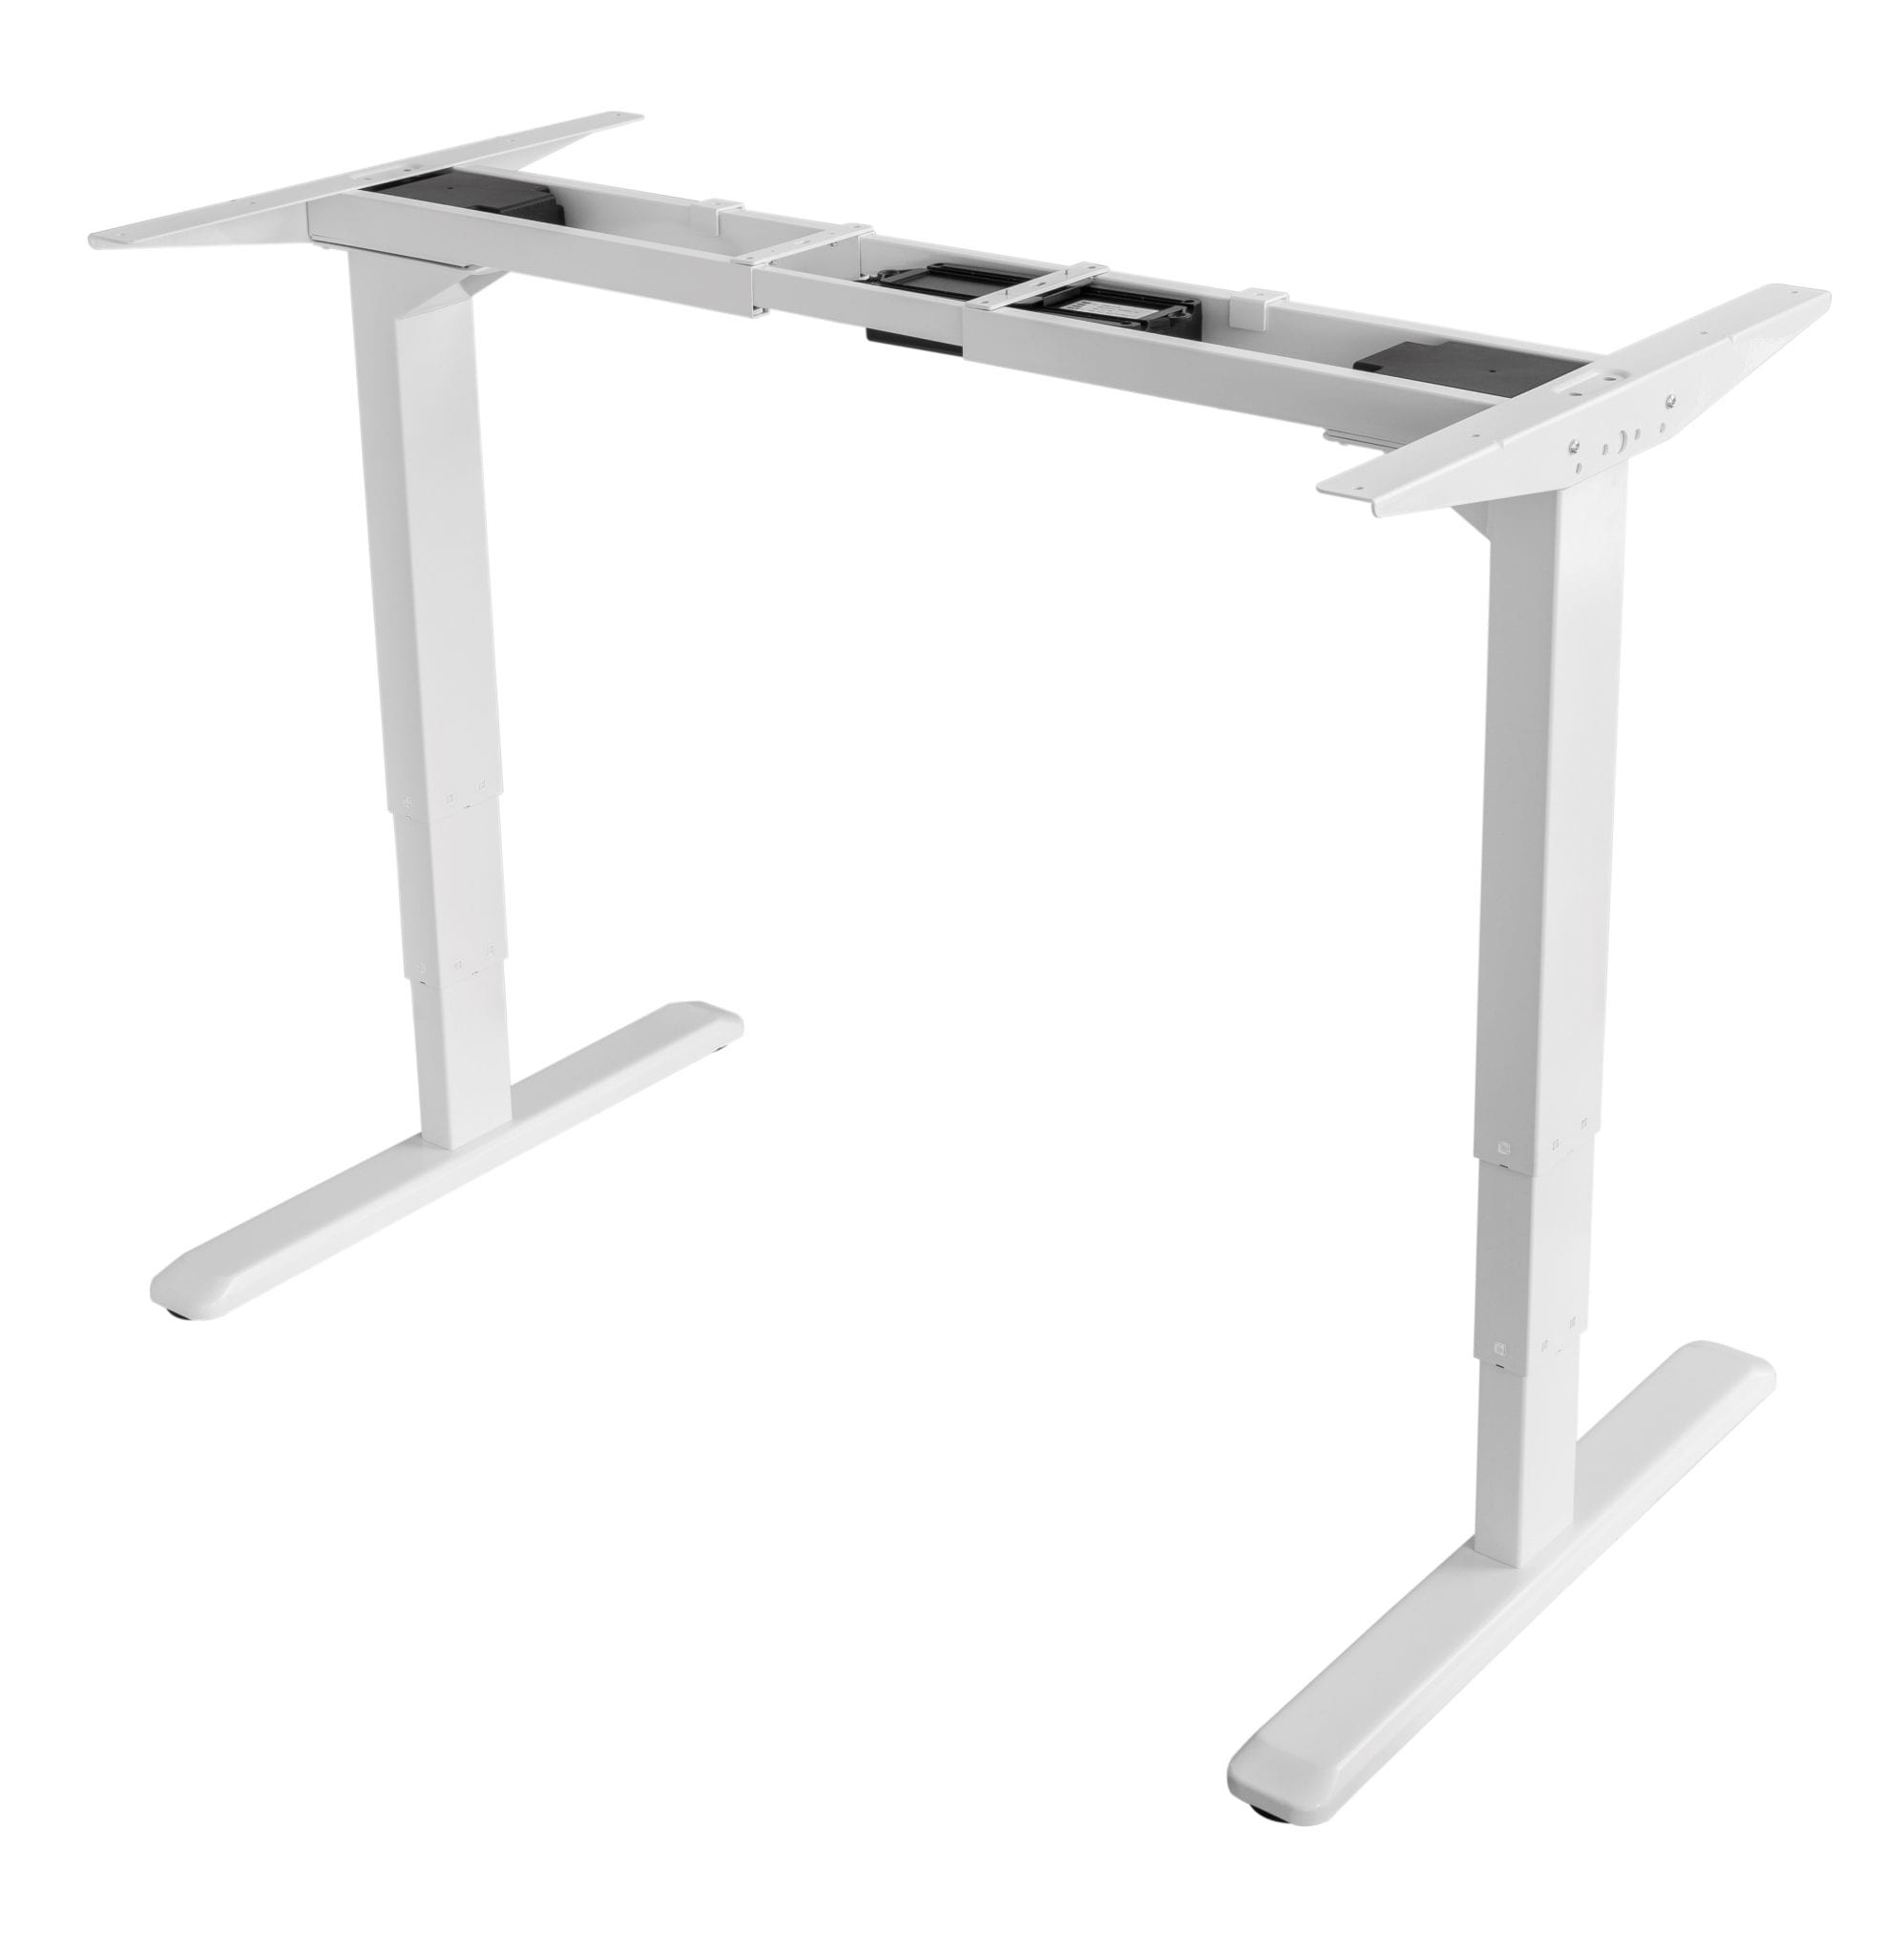 Allcam EDF02D Electric Height adjustable desk frame